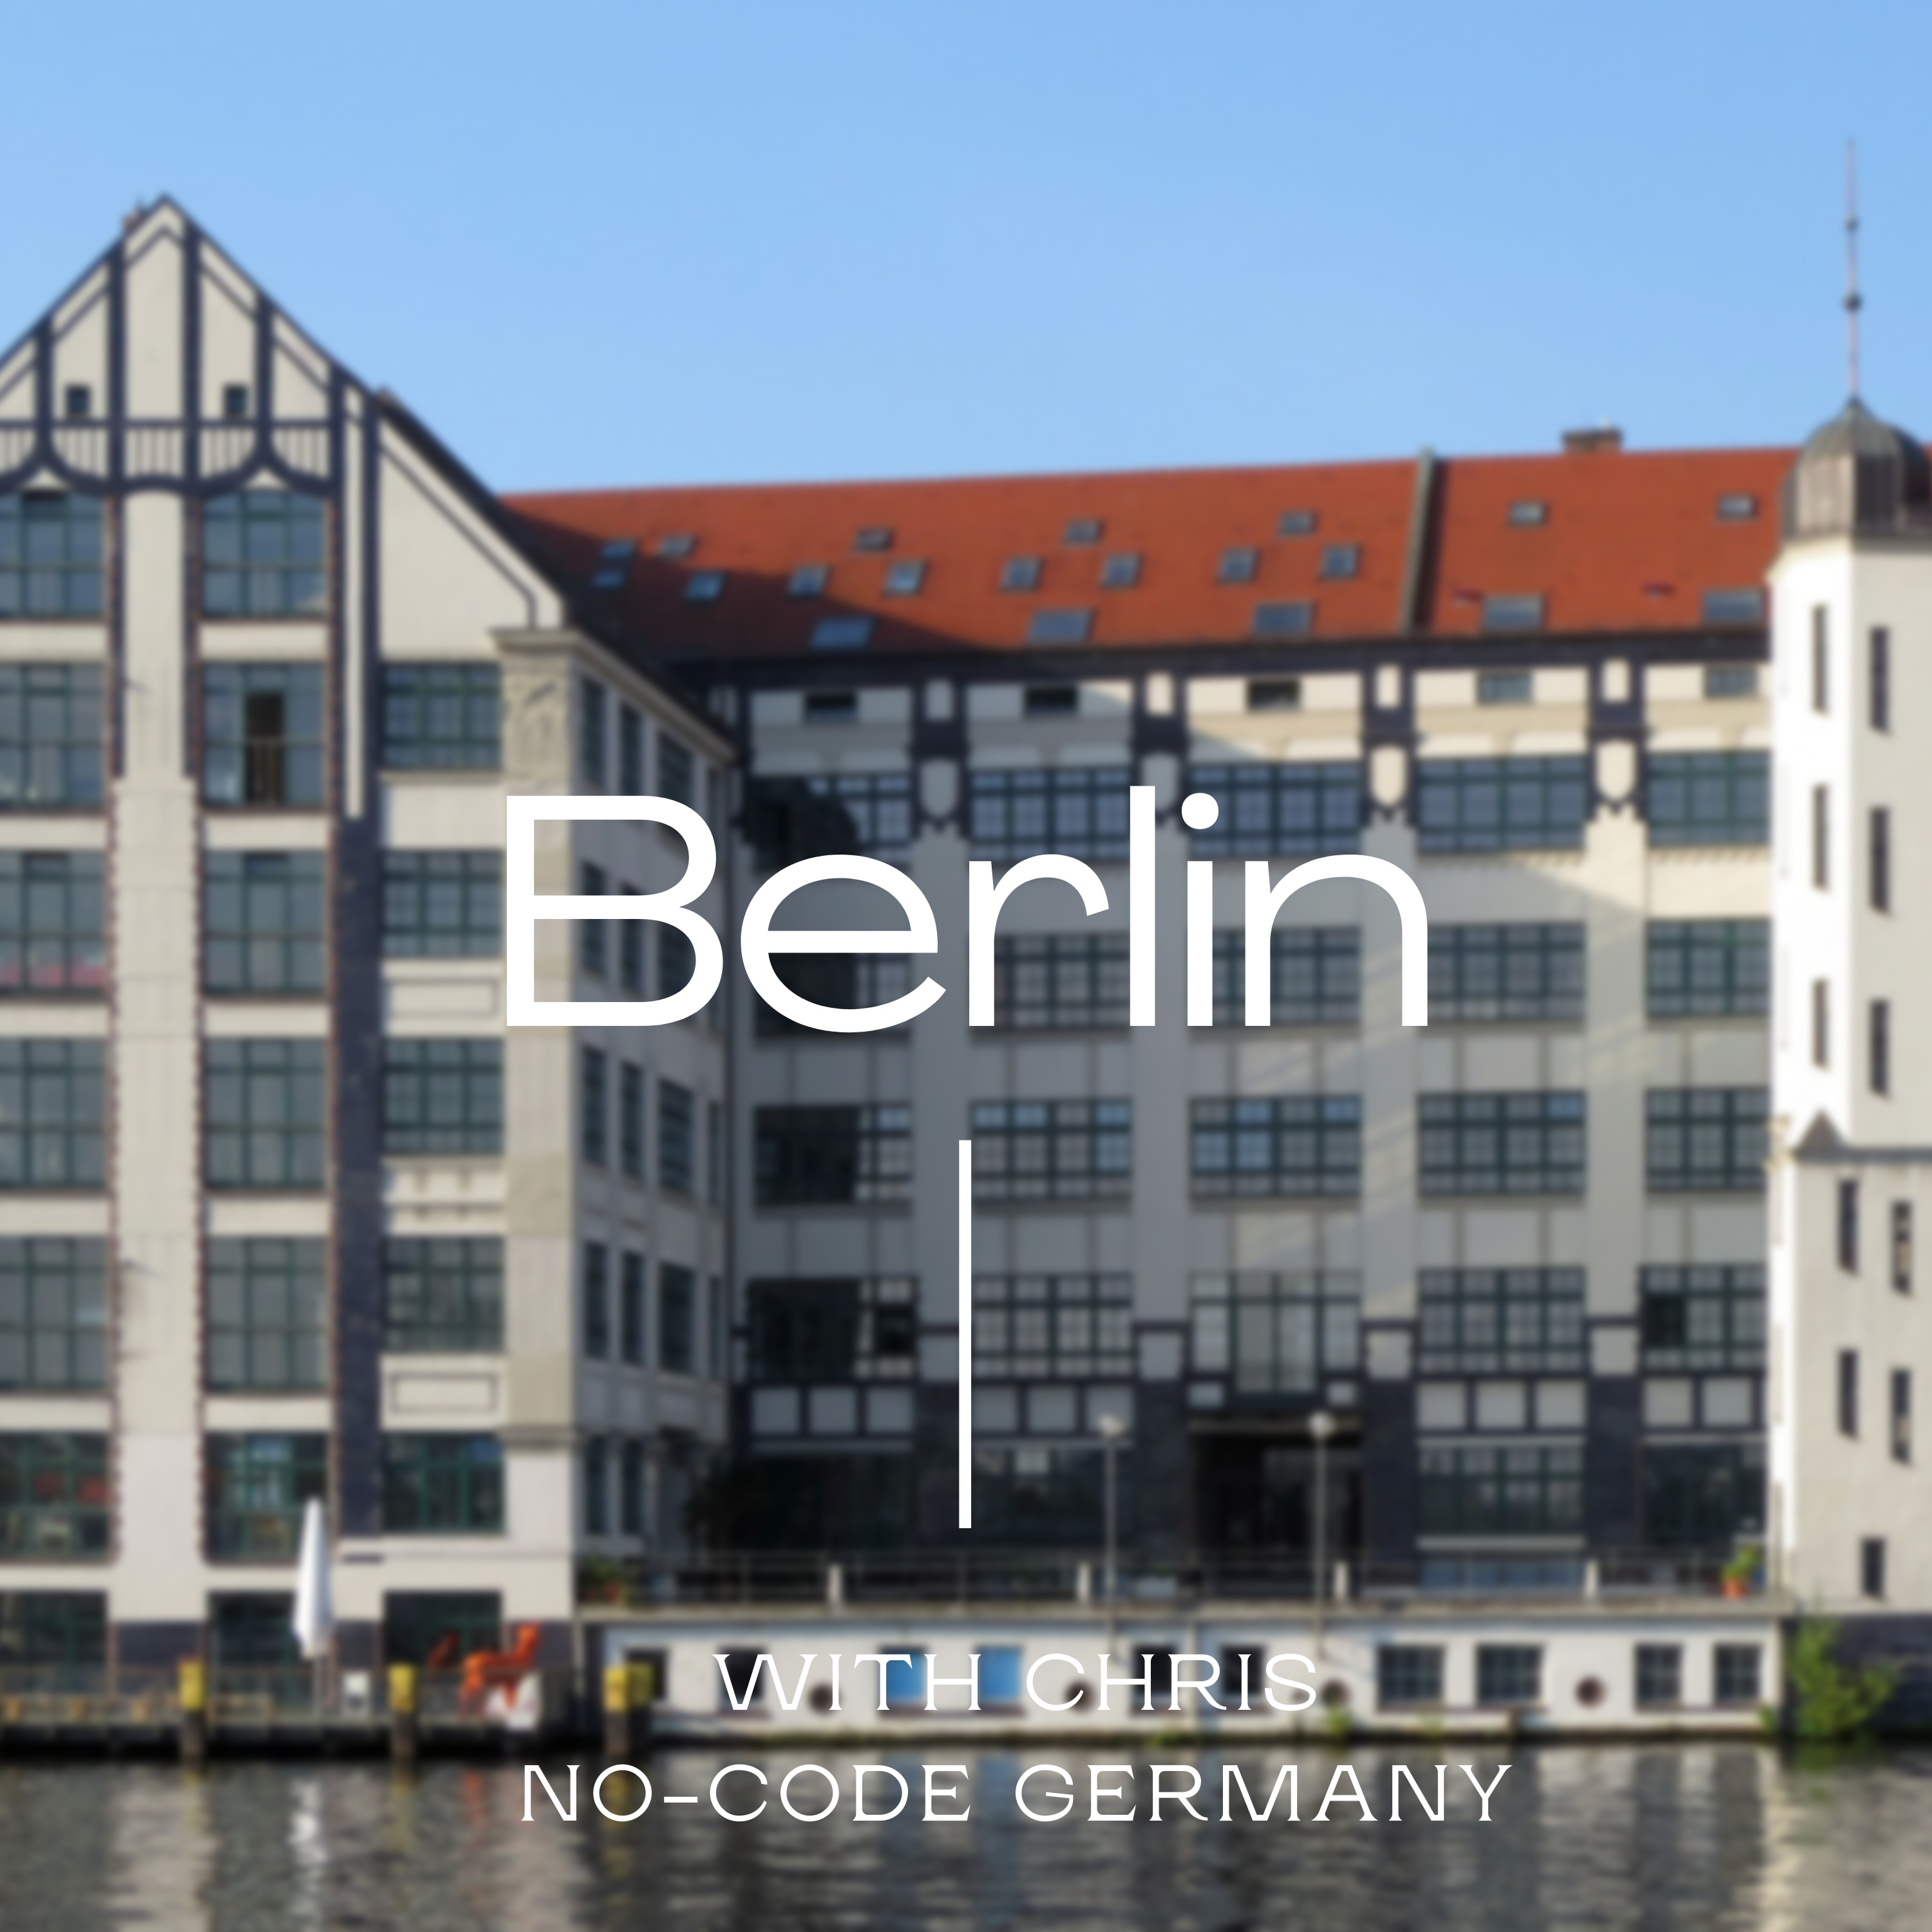 #6: In Berlin, Chris tells me about the Berlin no-code scene and his plans for it